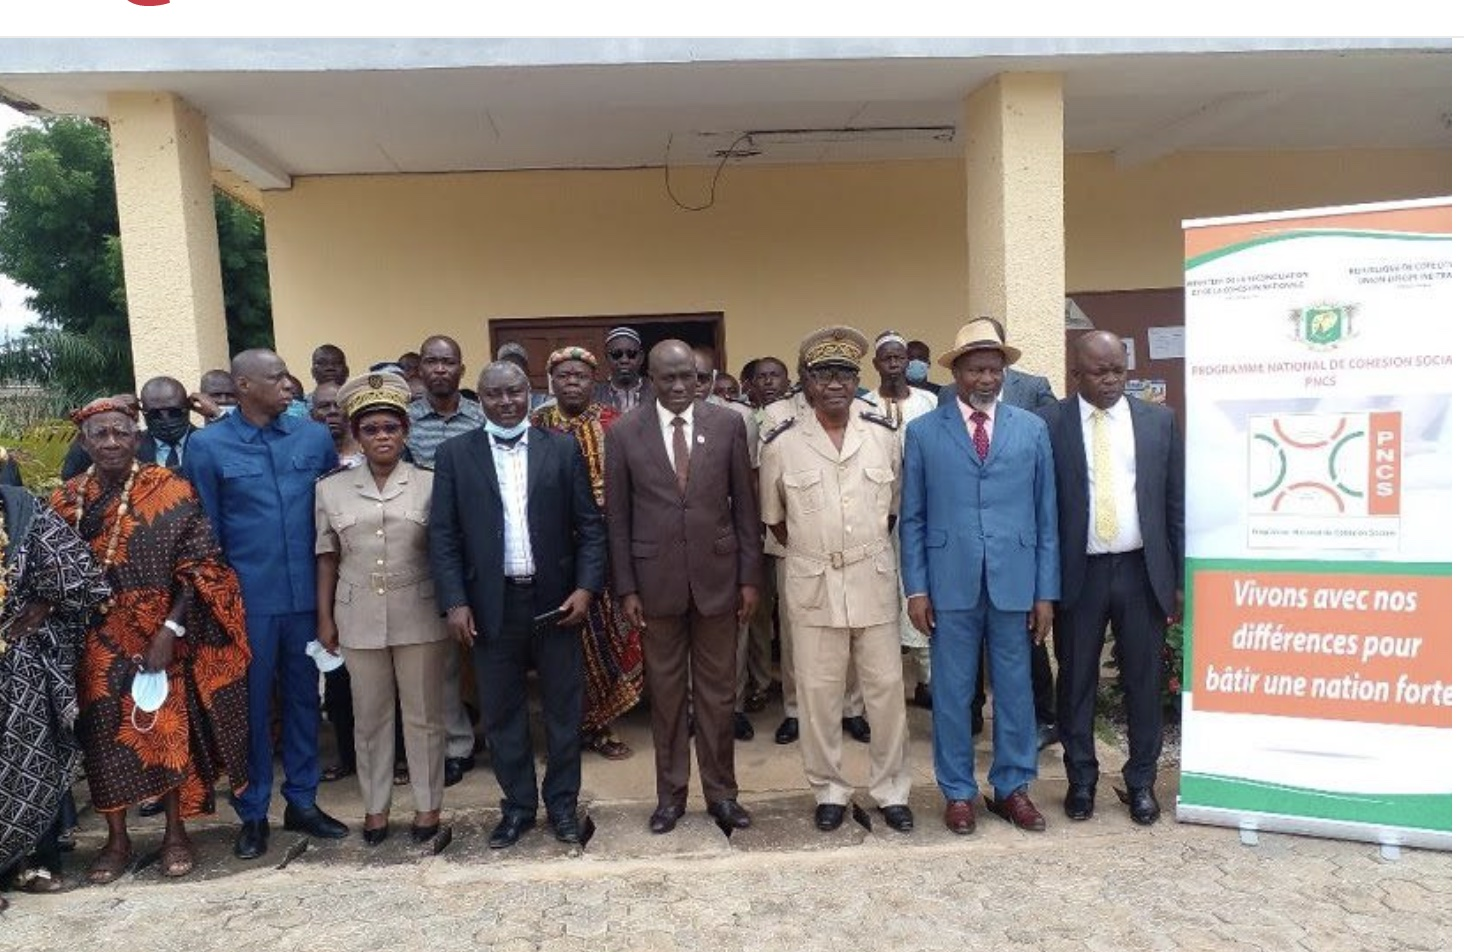 Toumodi, Ivory Coast: Community leaders trained in the culture of peace